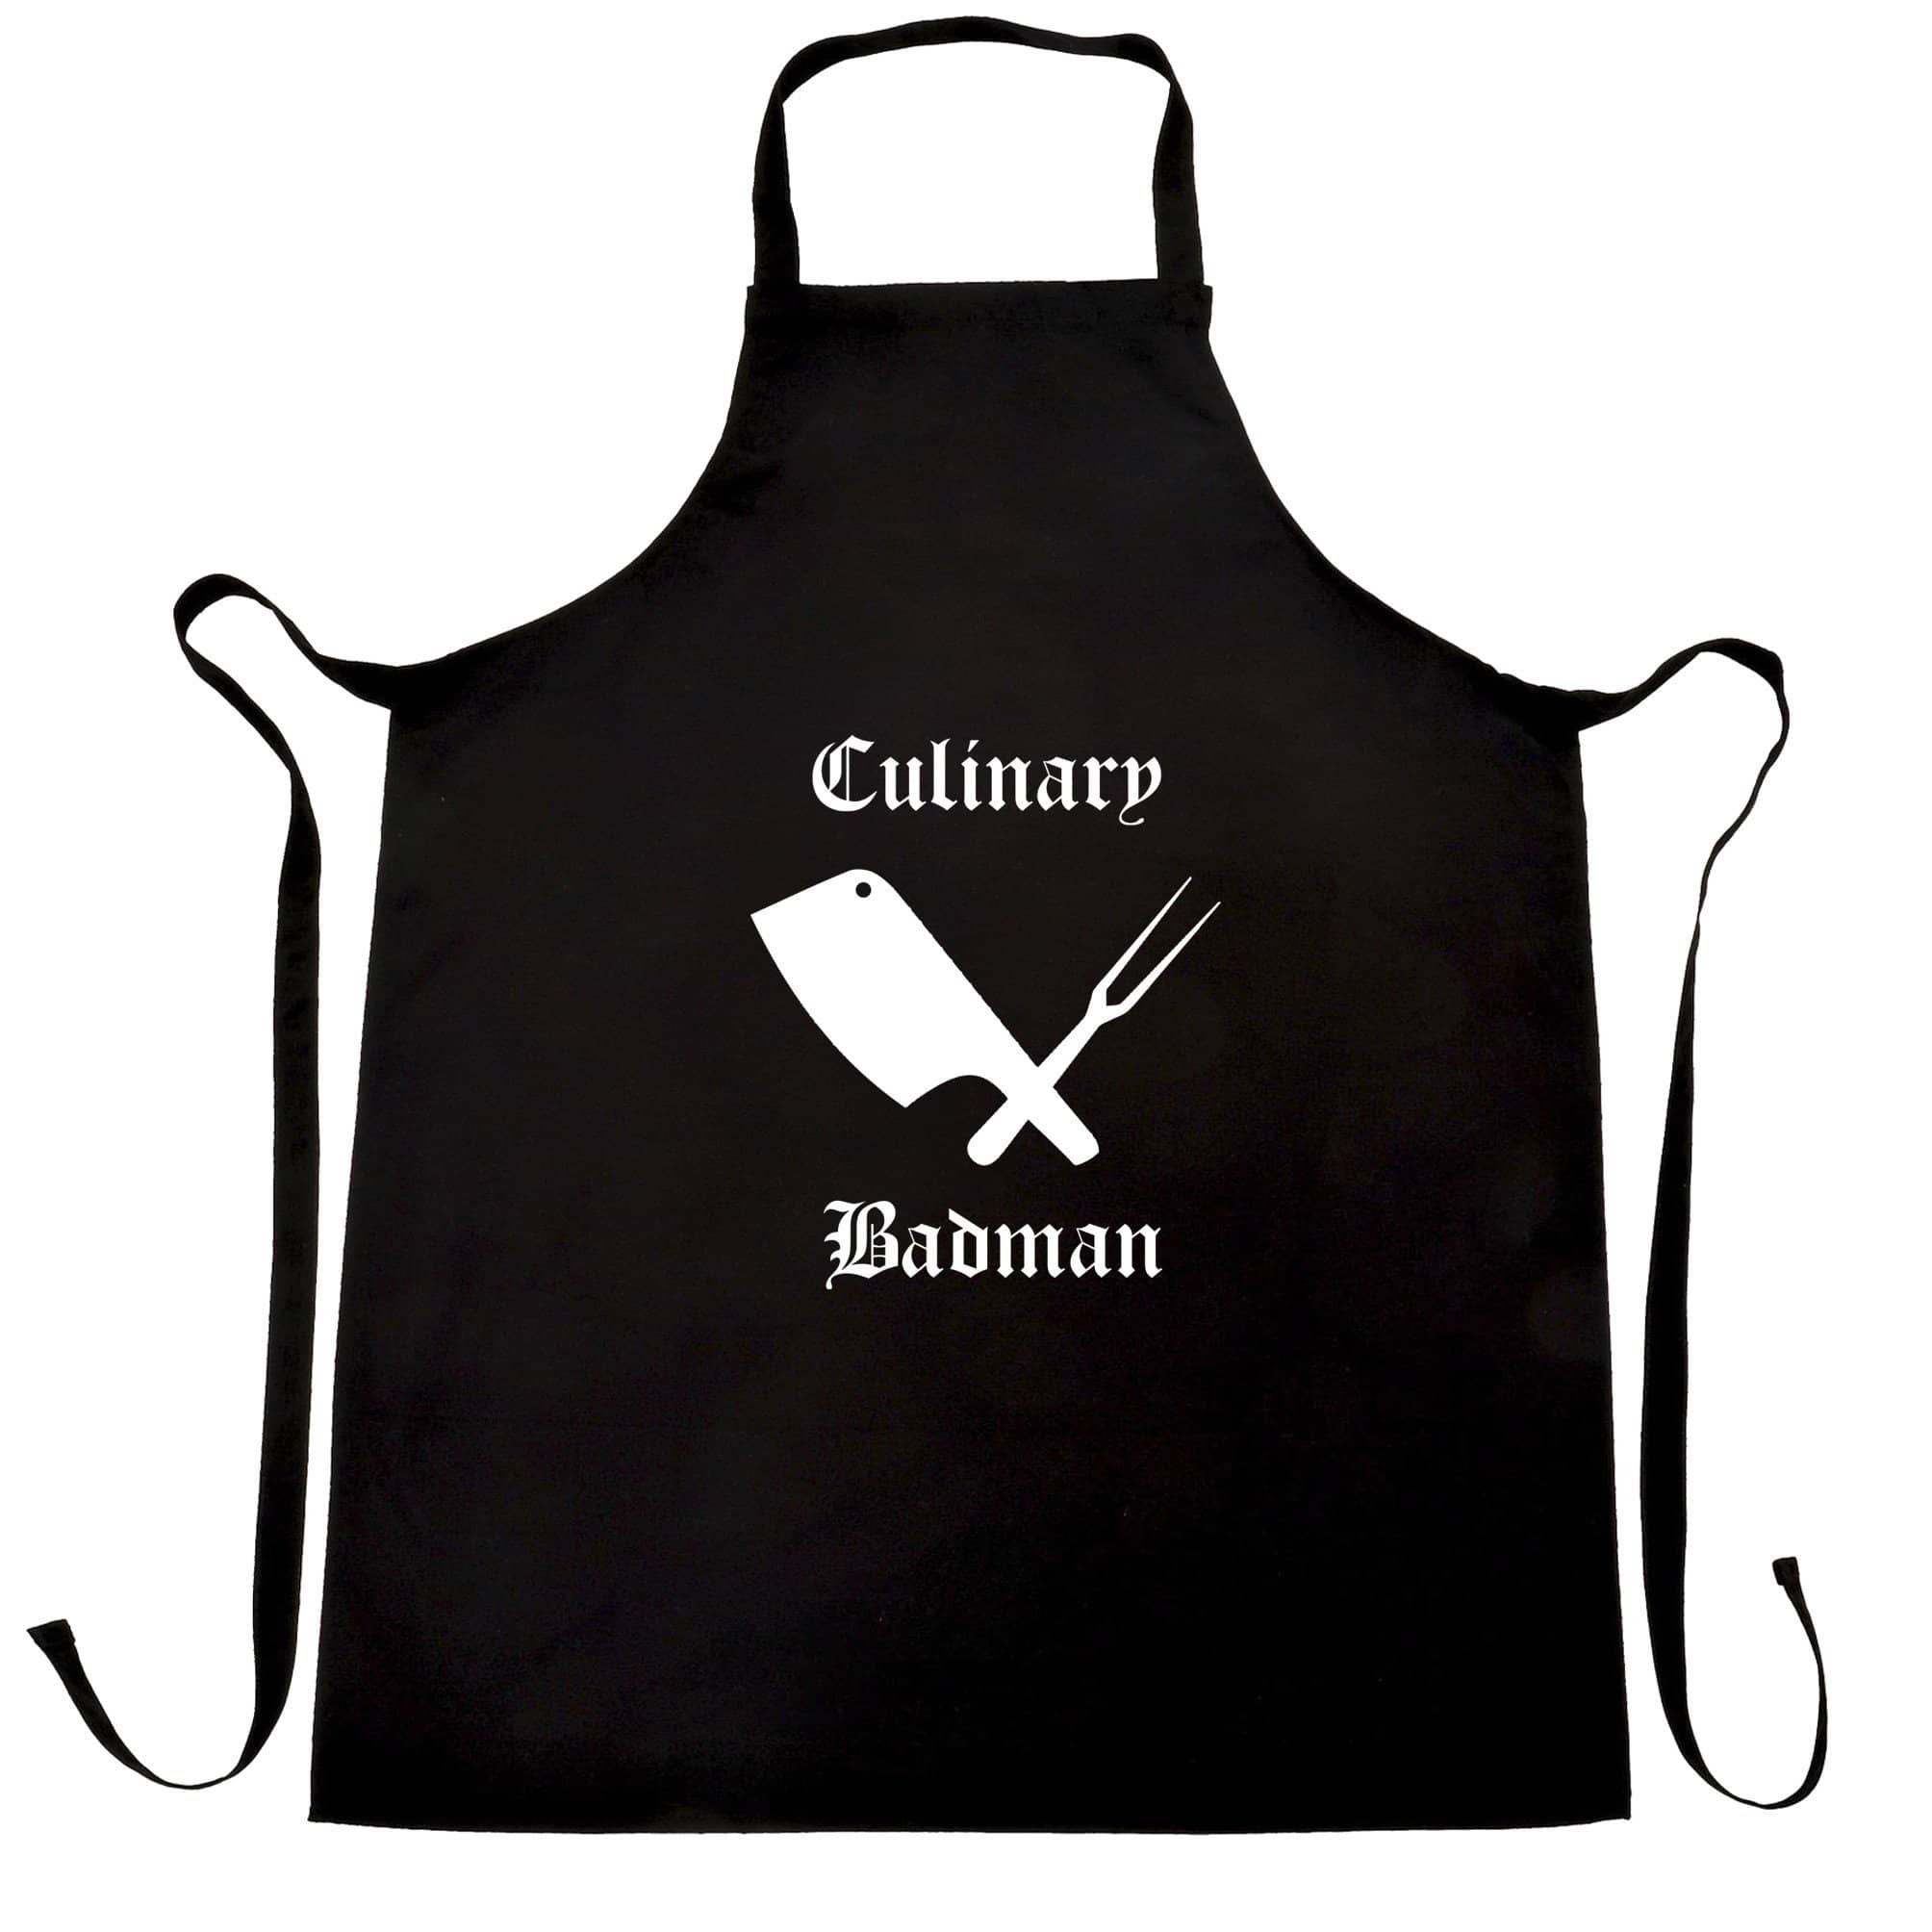 Cooking Chef's Apron Culinary Badman Cuisine Logo